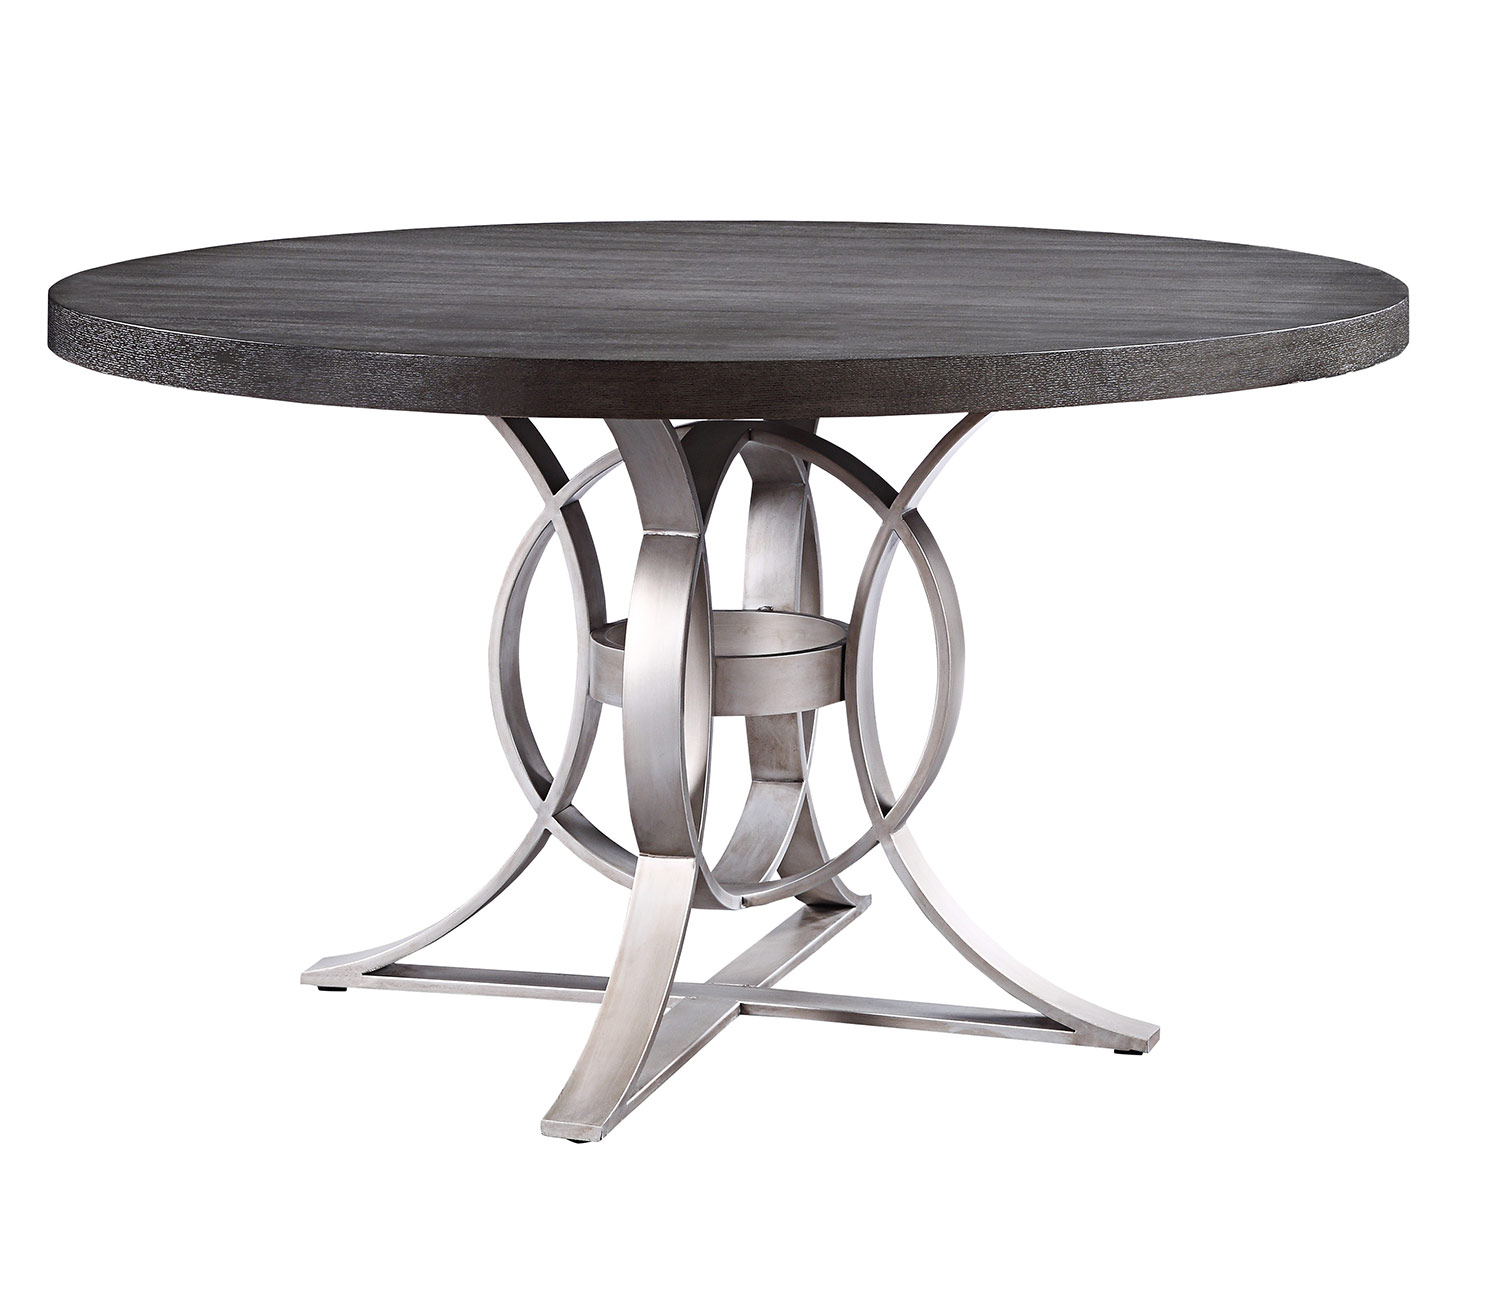 Homelegance Standish Round Dining Table - Gray